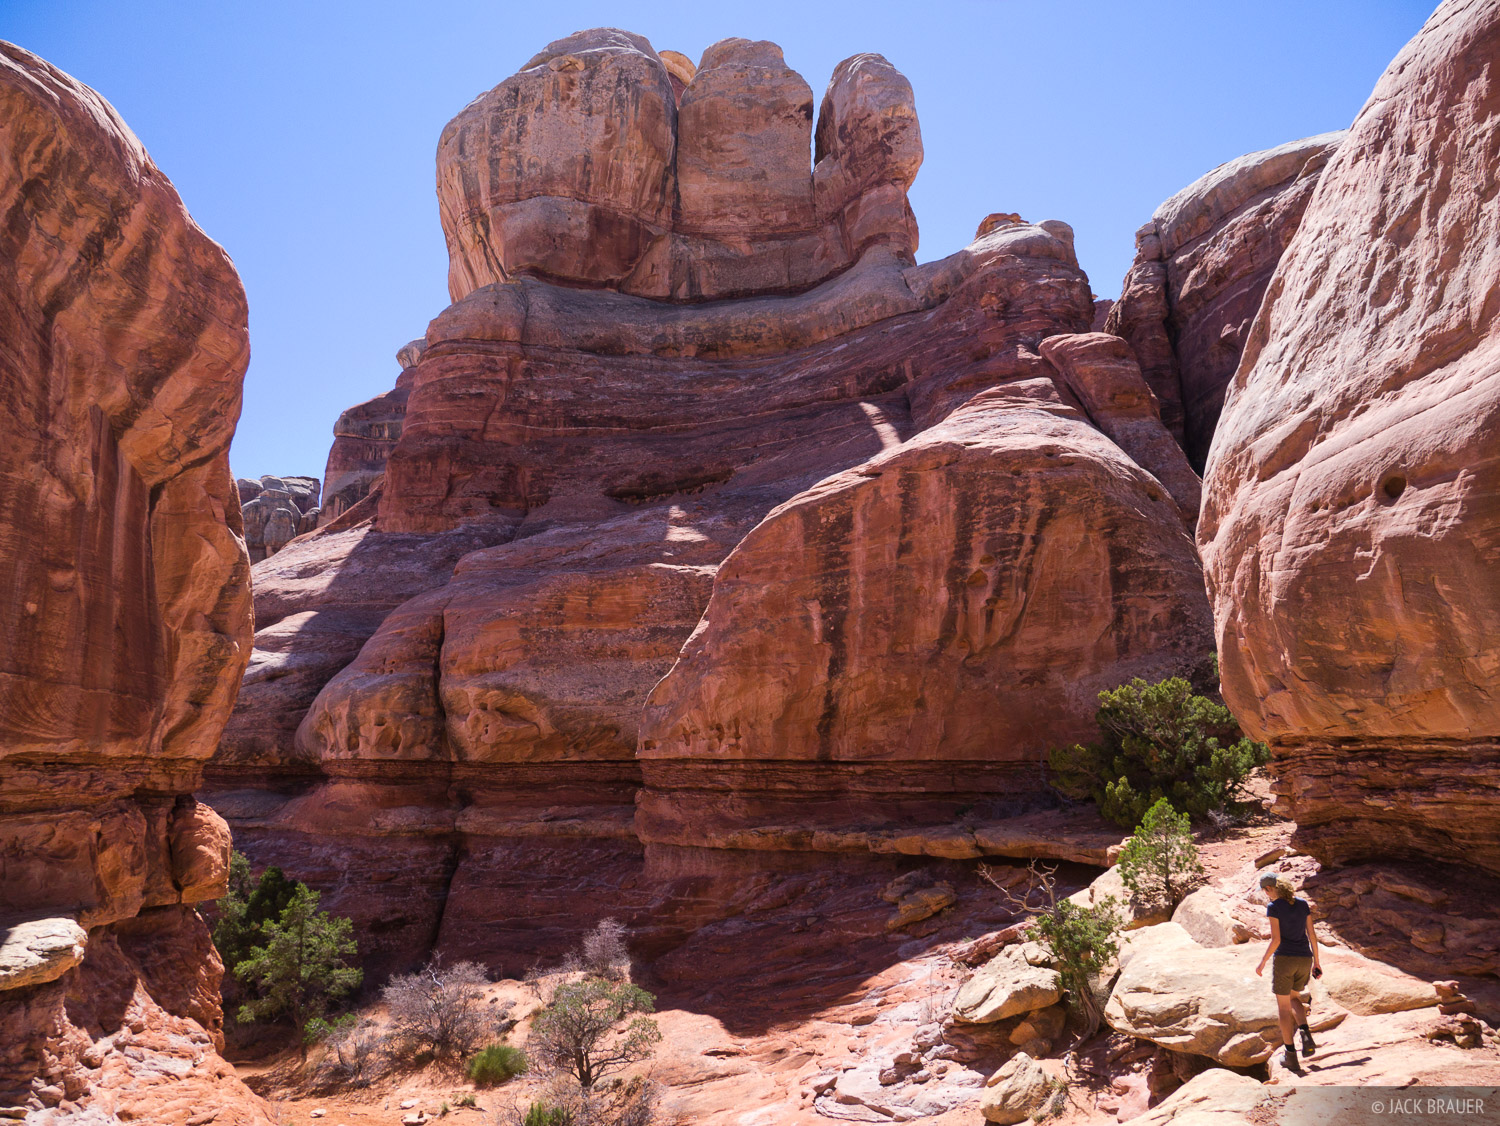 Canyonlands National Park, Utah, Needles District, hiking, Elephant Canyon, photo